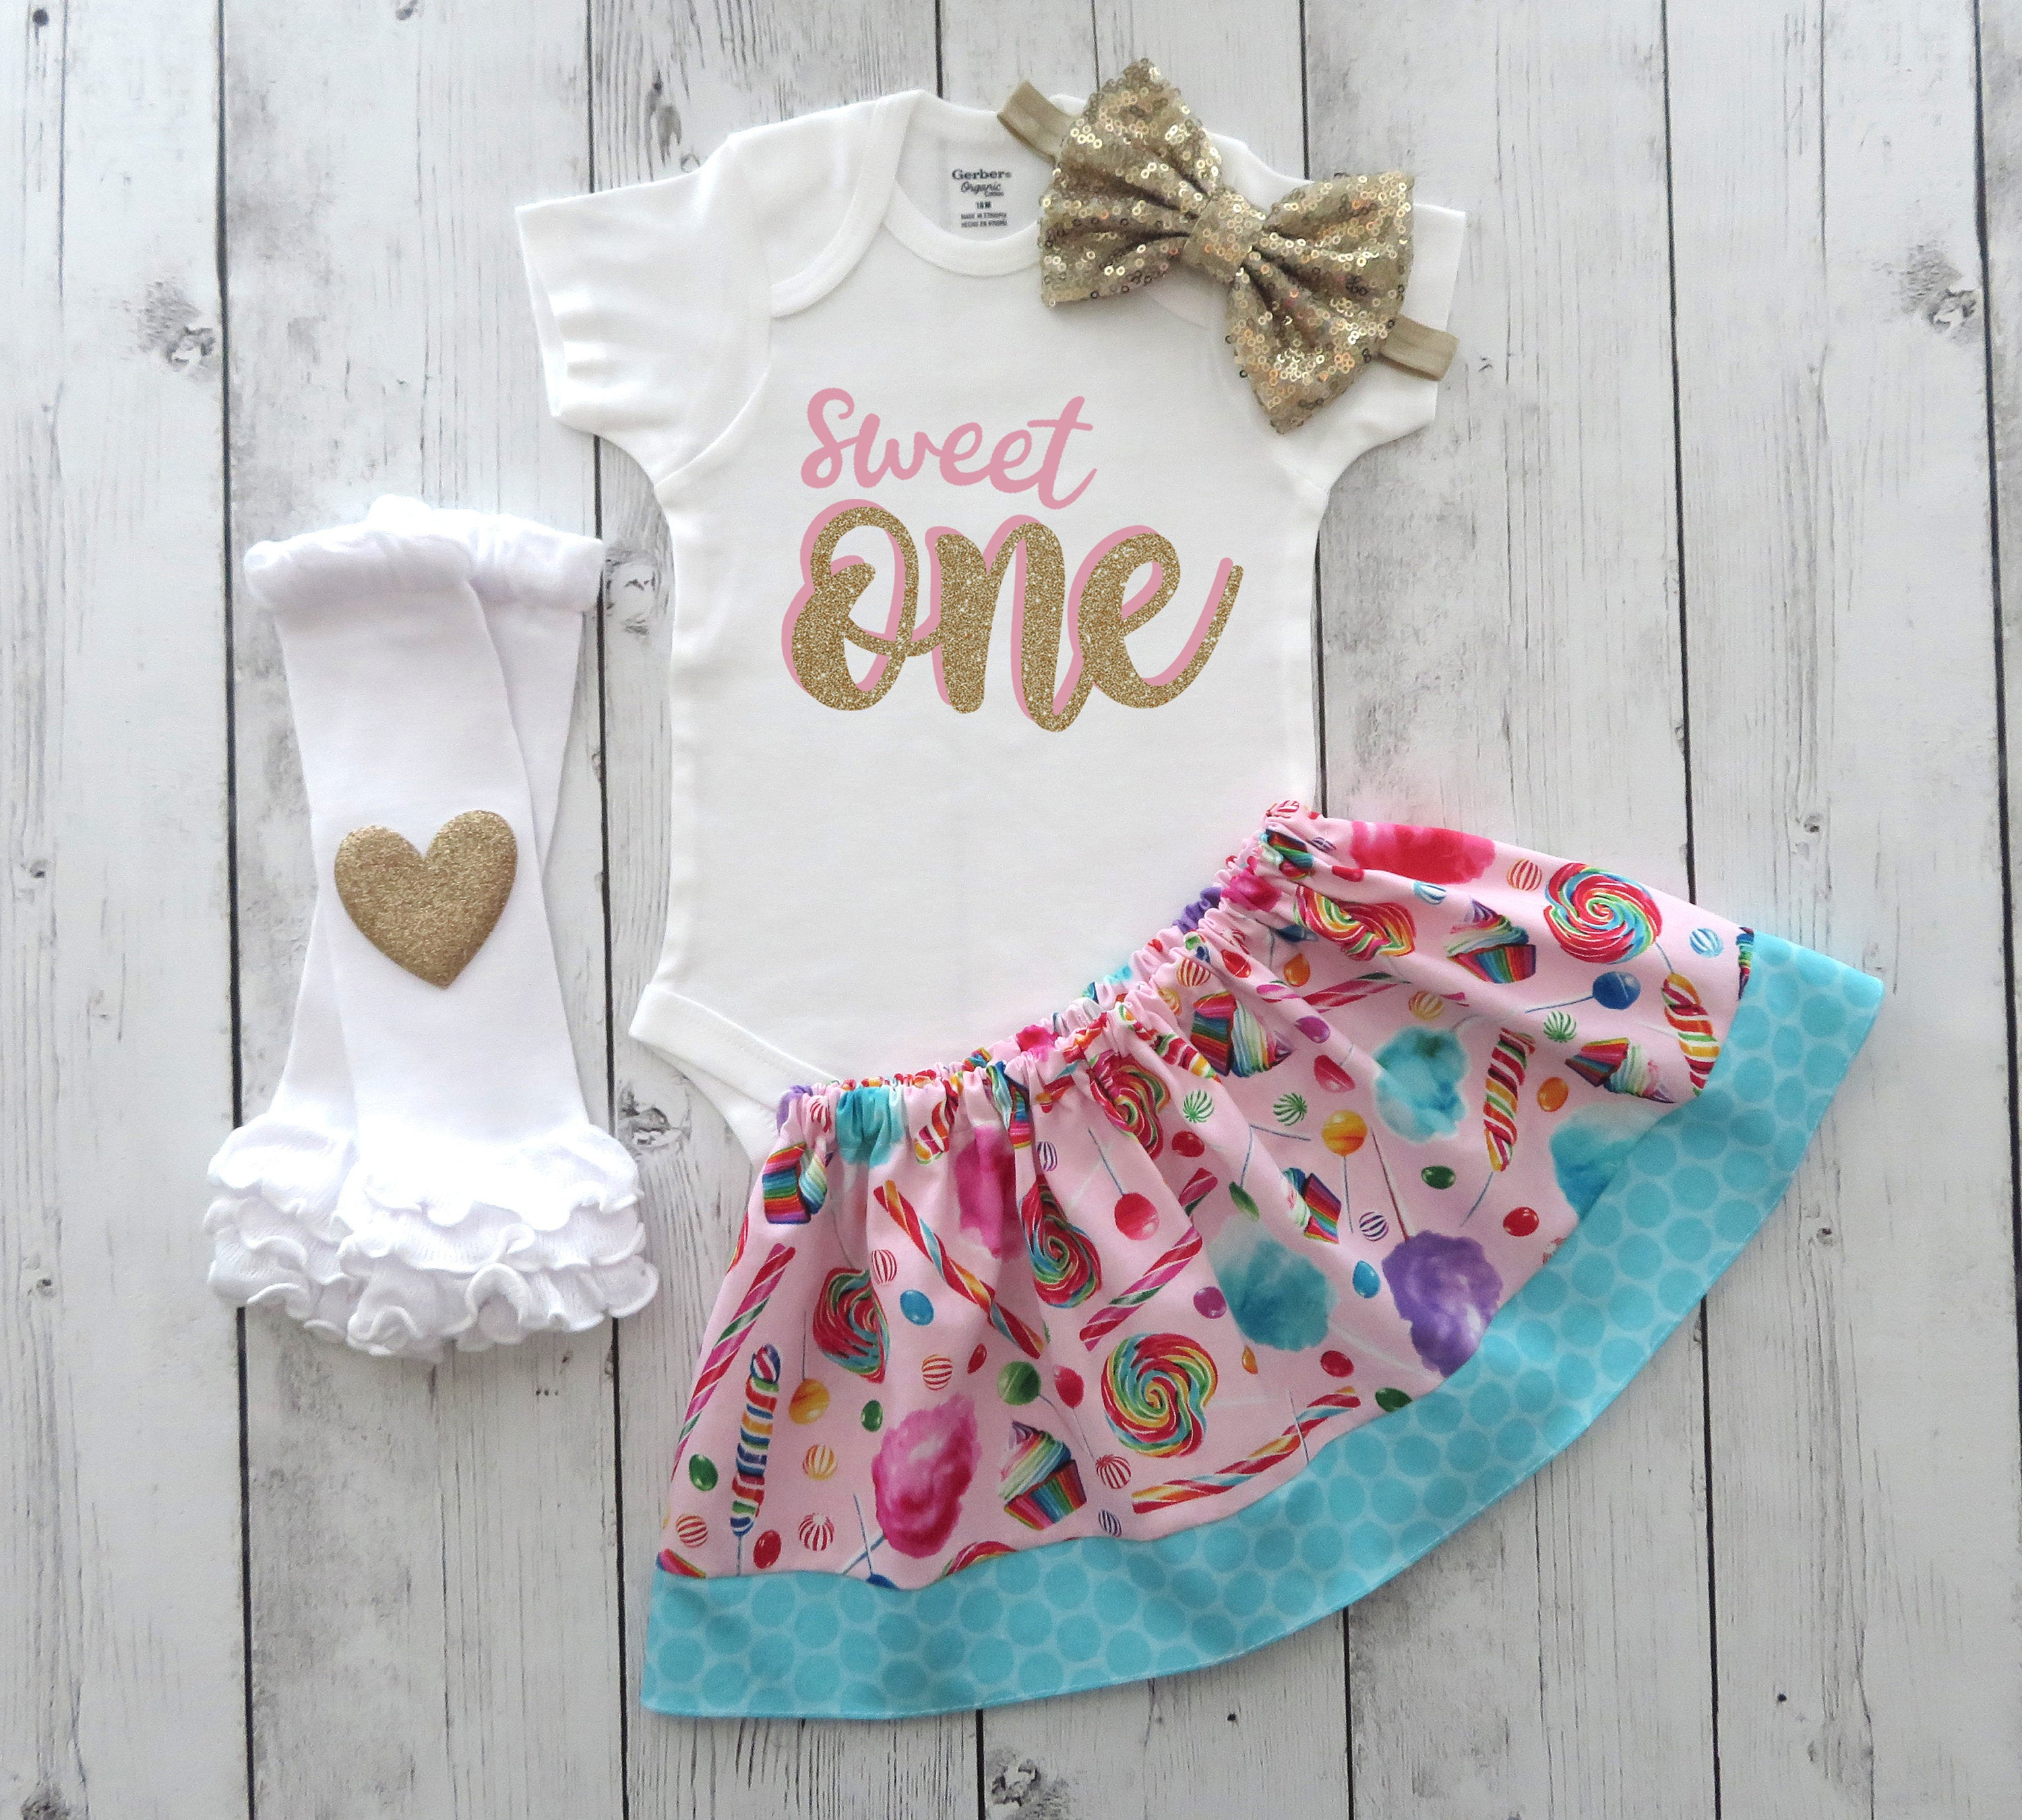 Sweet One First Birthday Outfit in pink and gold - ice cream, lollipops, cotton candy, ice cream birthday girl, sweet one 1st bday outfit